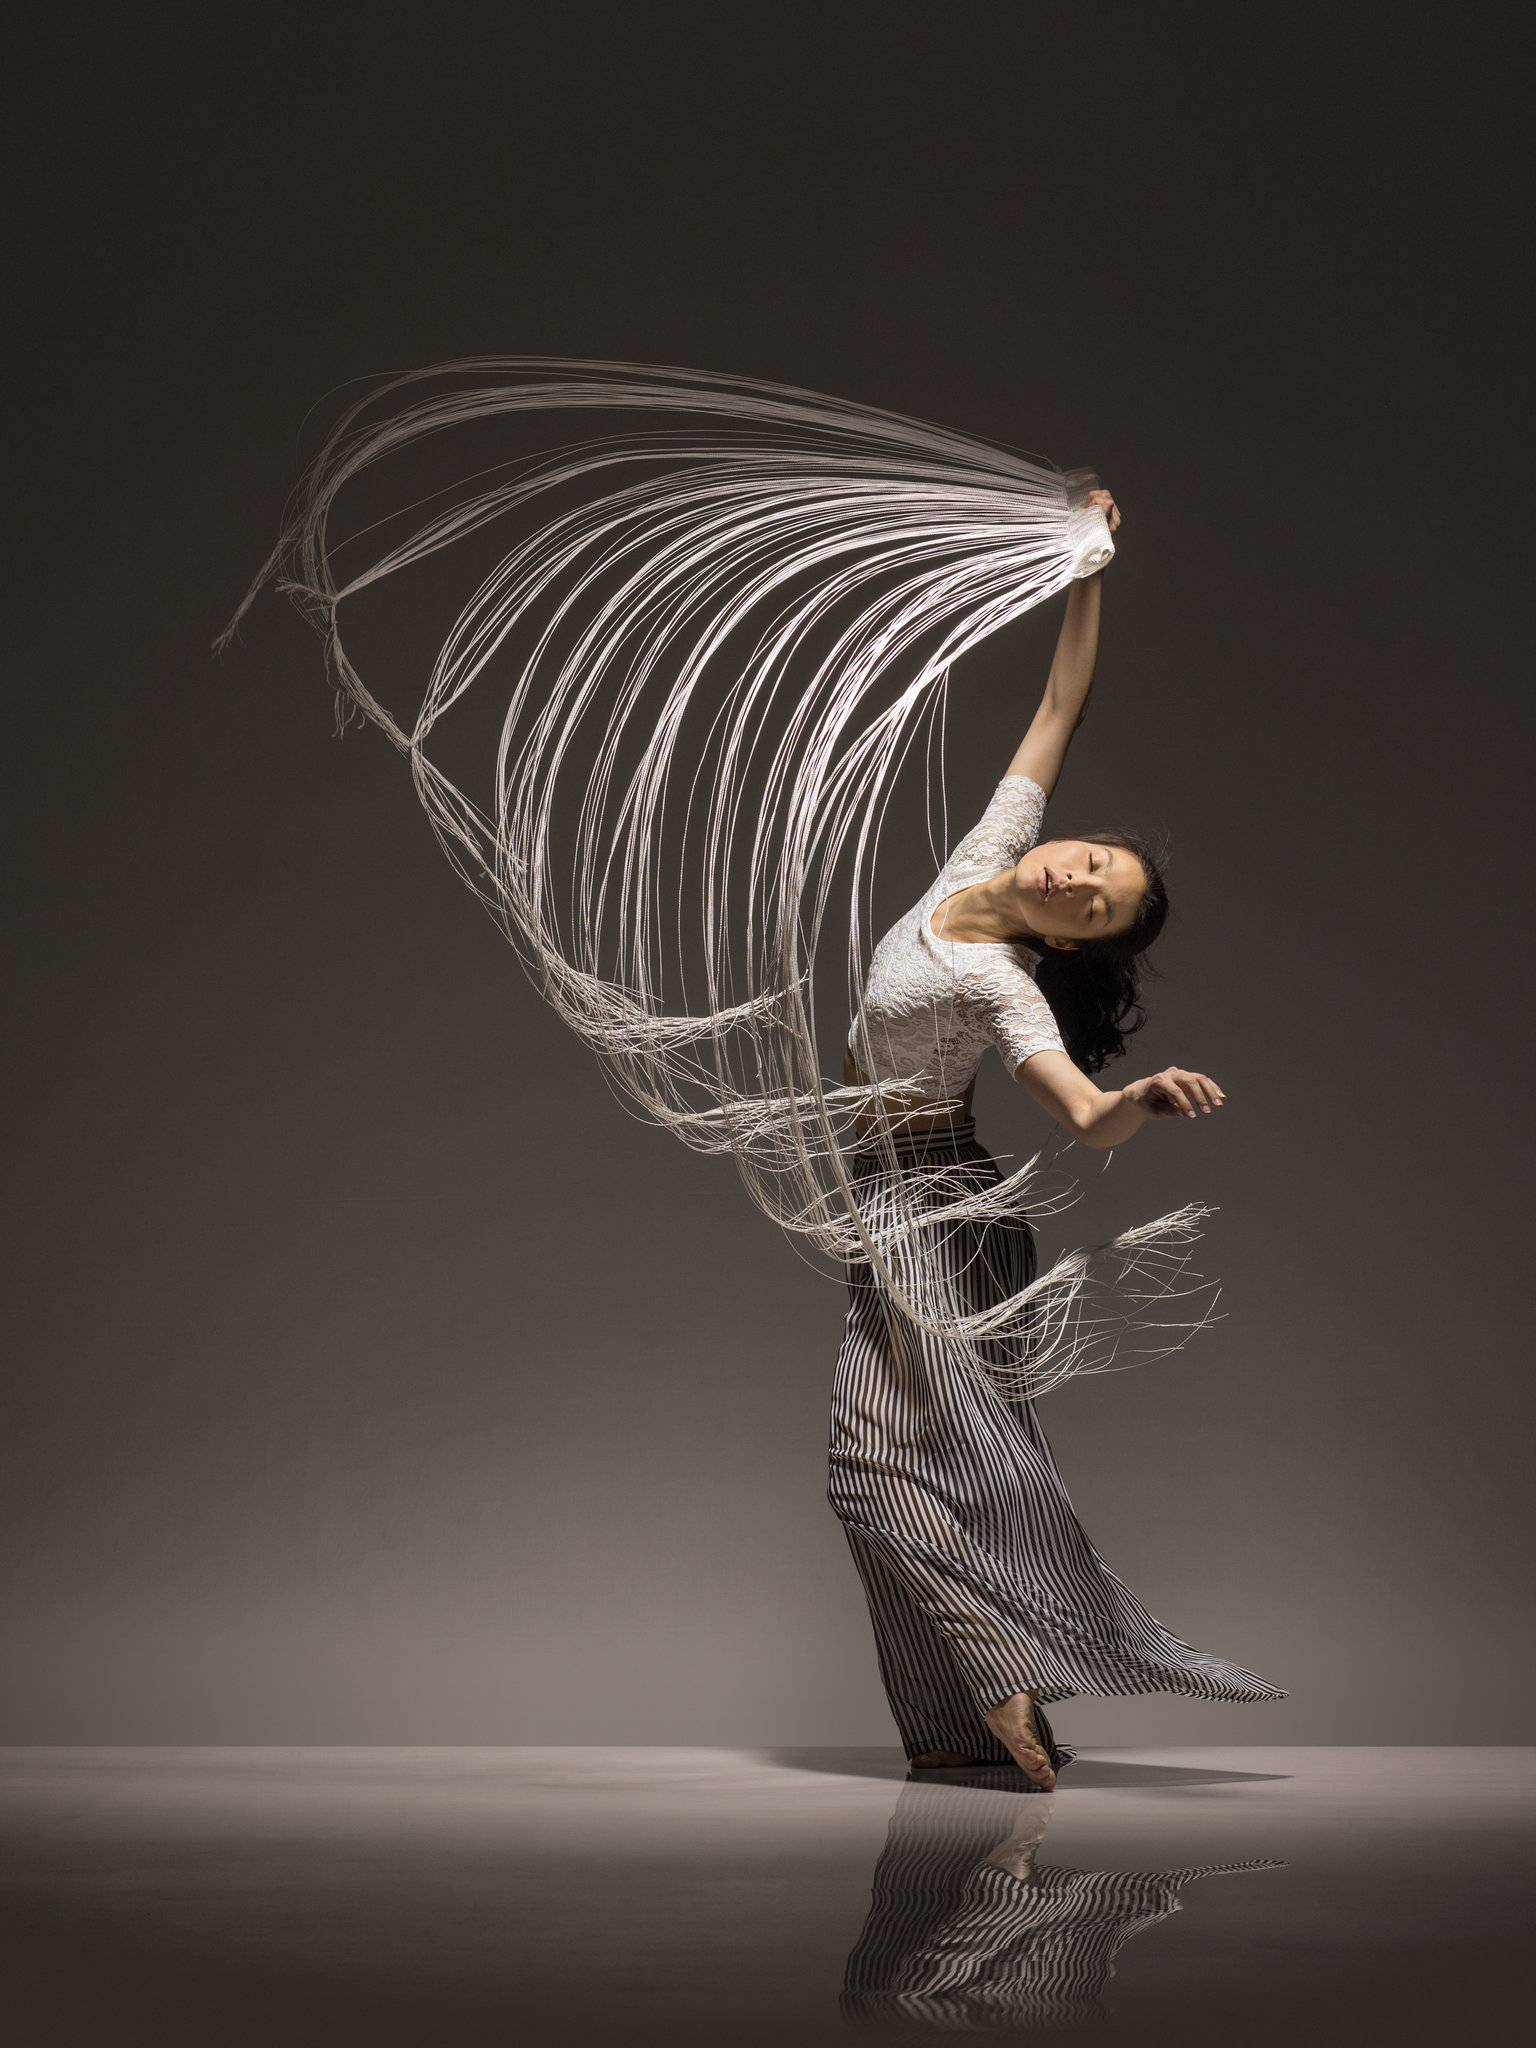 grainedephotographe-loisgreenfield13